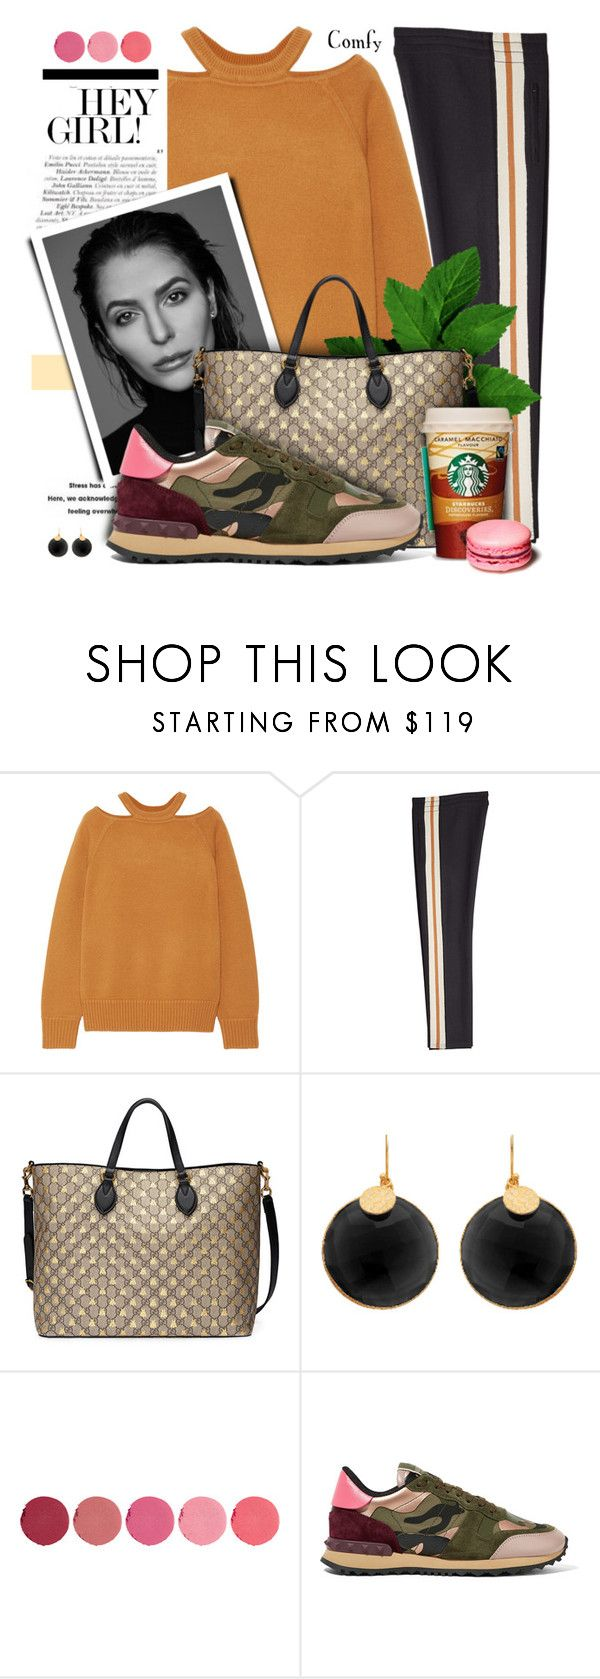 """""""Comfy Clothes contest"""" by angiesprad ❤ liked on Polyvore featuring Jason Wu, Étoile Isabel Marant, Current Mood, Gabriella, Gucci, Kjaer Weis and Valentino"""